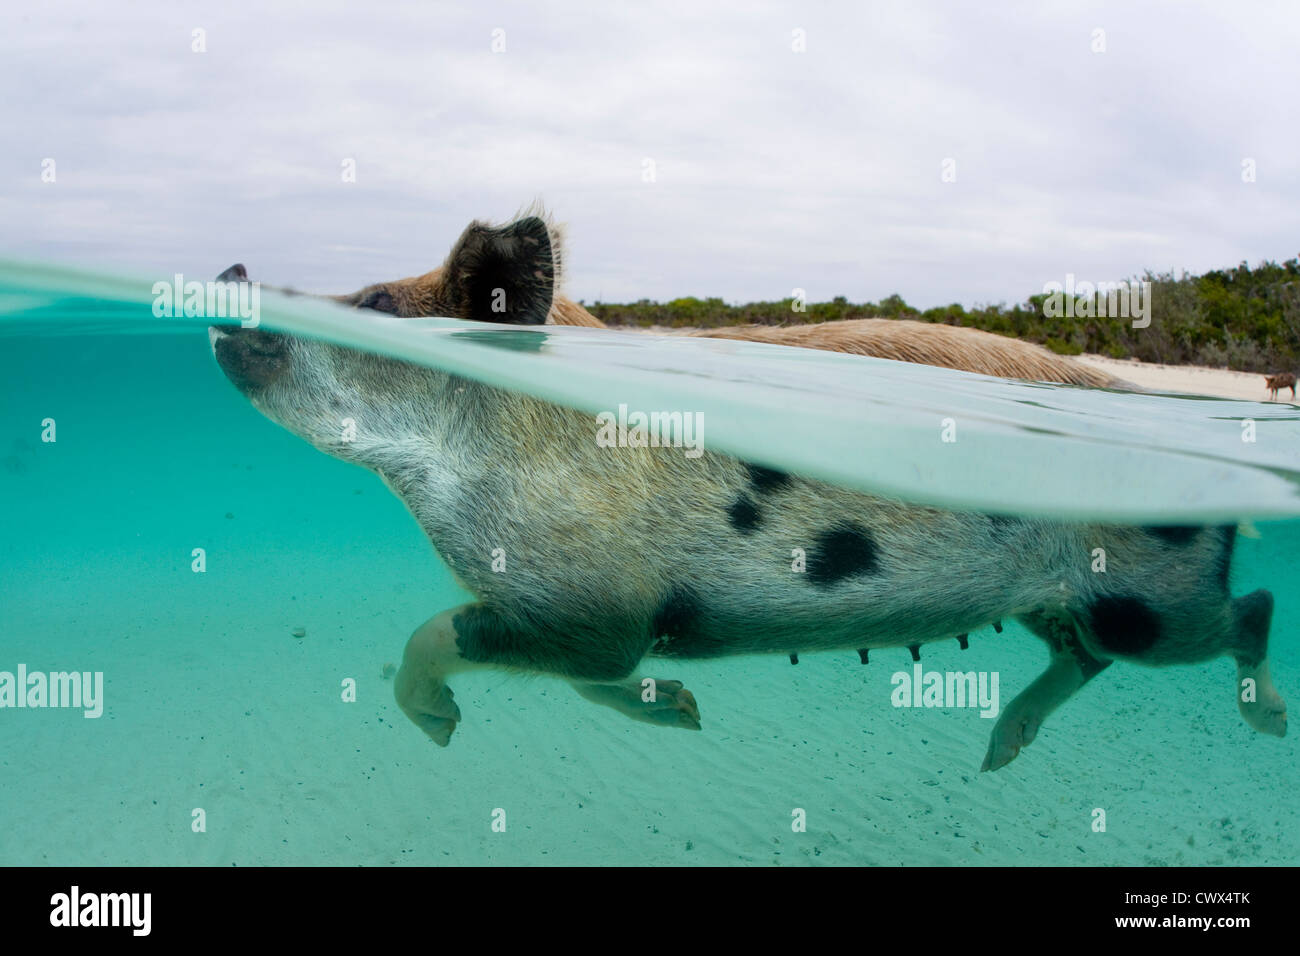 A feral pig swims in the clear waters of the Bahamas at Staniel Cay to greet a boat full of tourists. - Stock Image